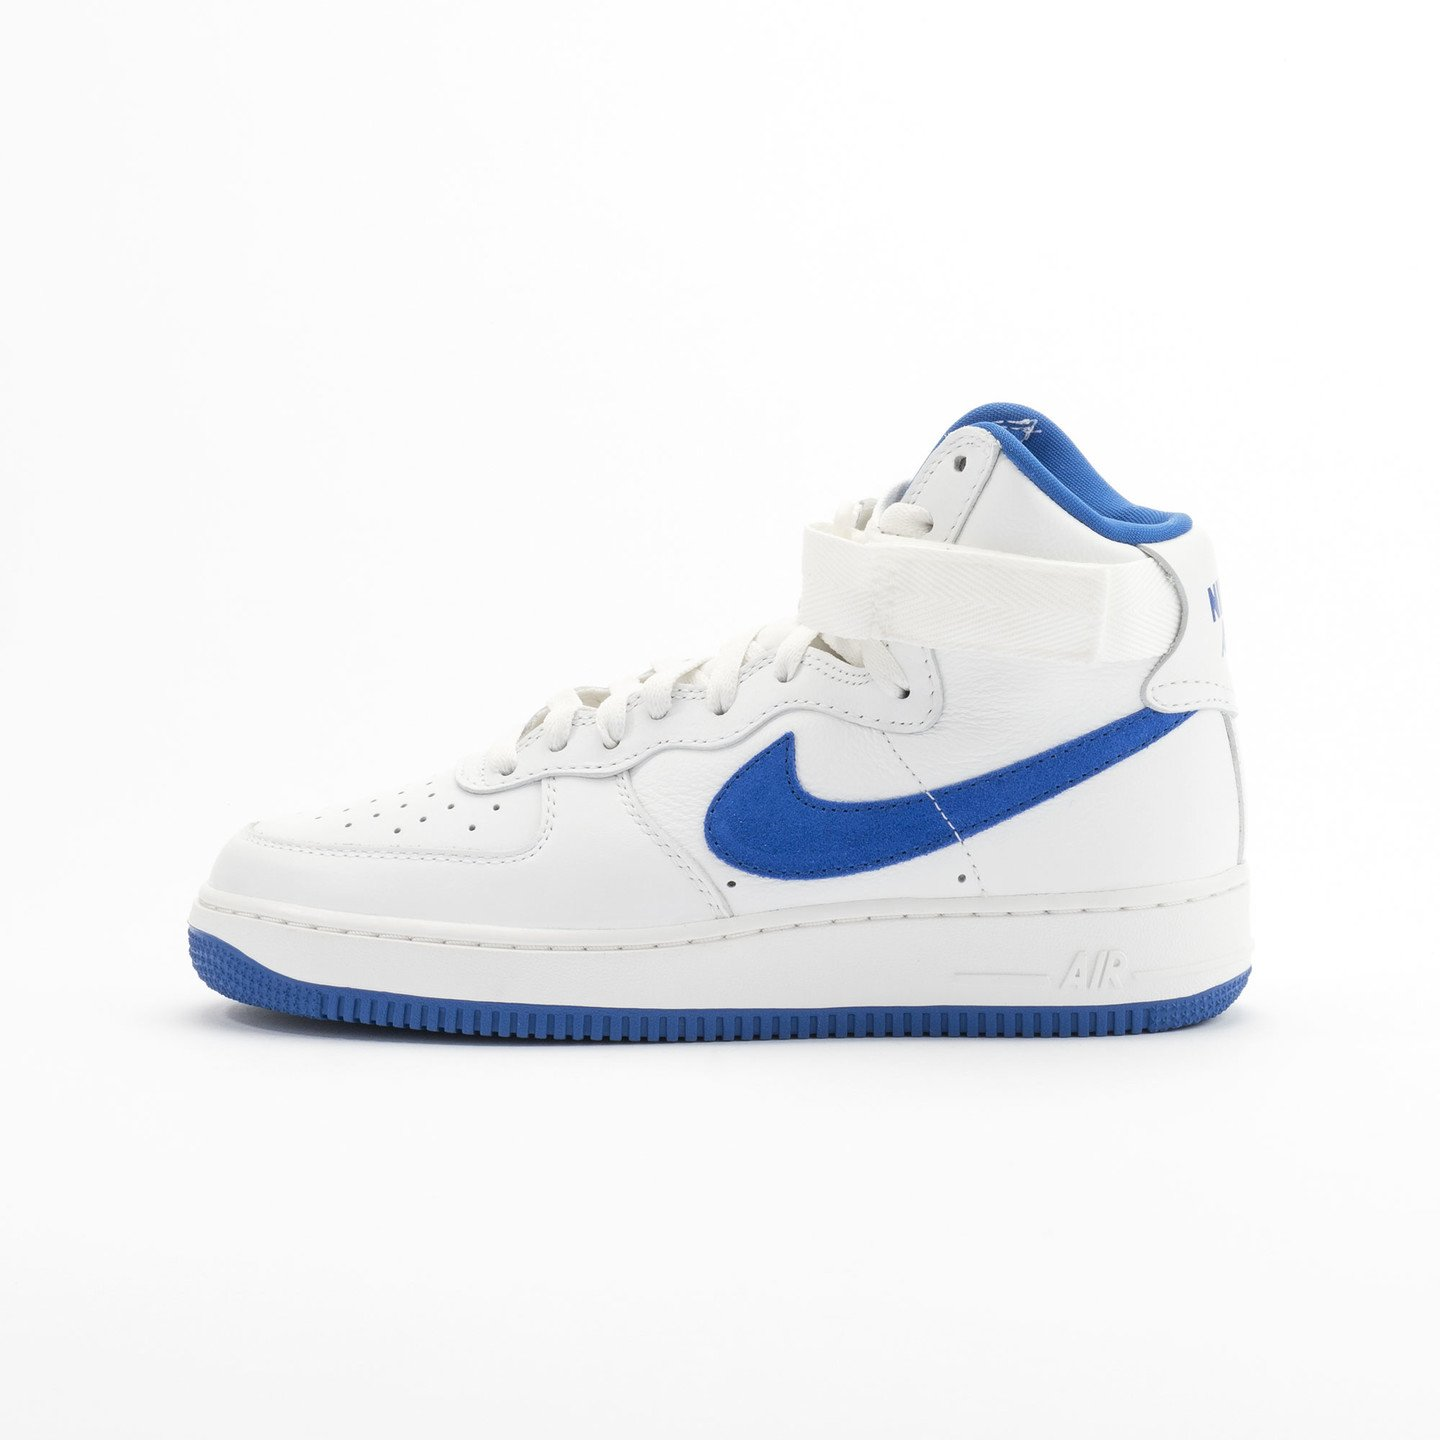 Nike Air Force 1 Hi Retro OG QS Summit White - Game Royal 743546-103-43